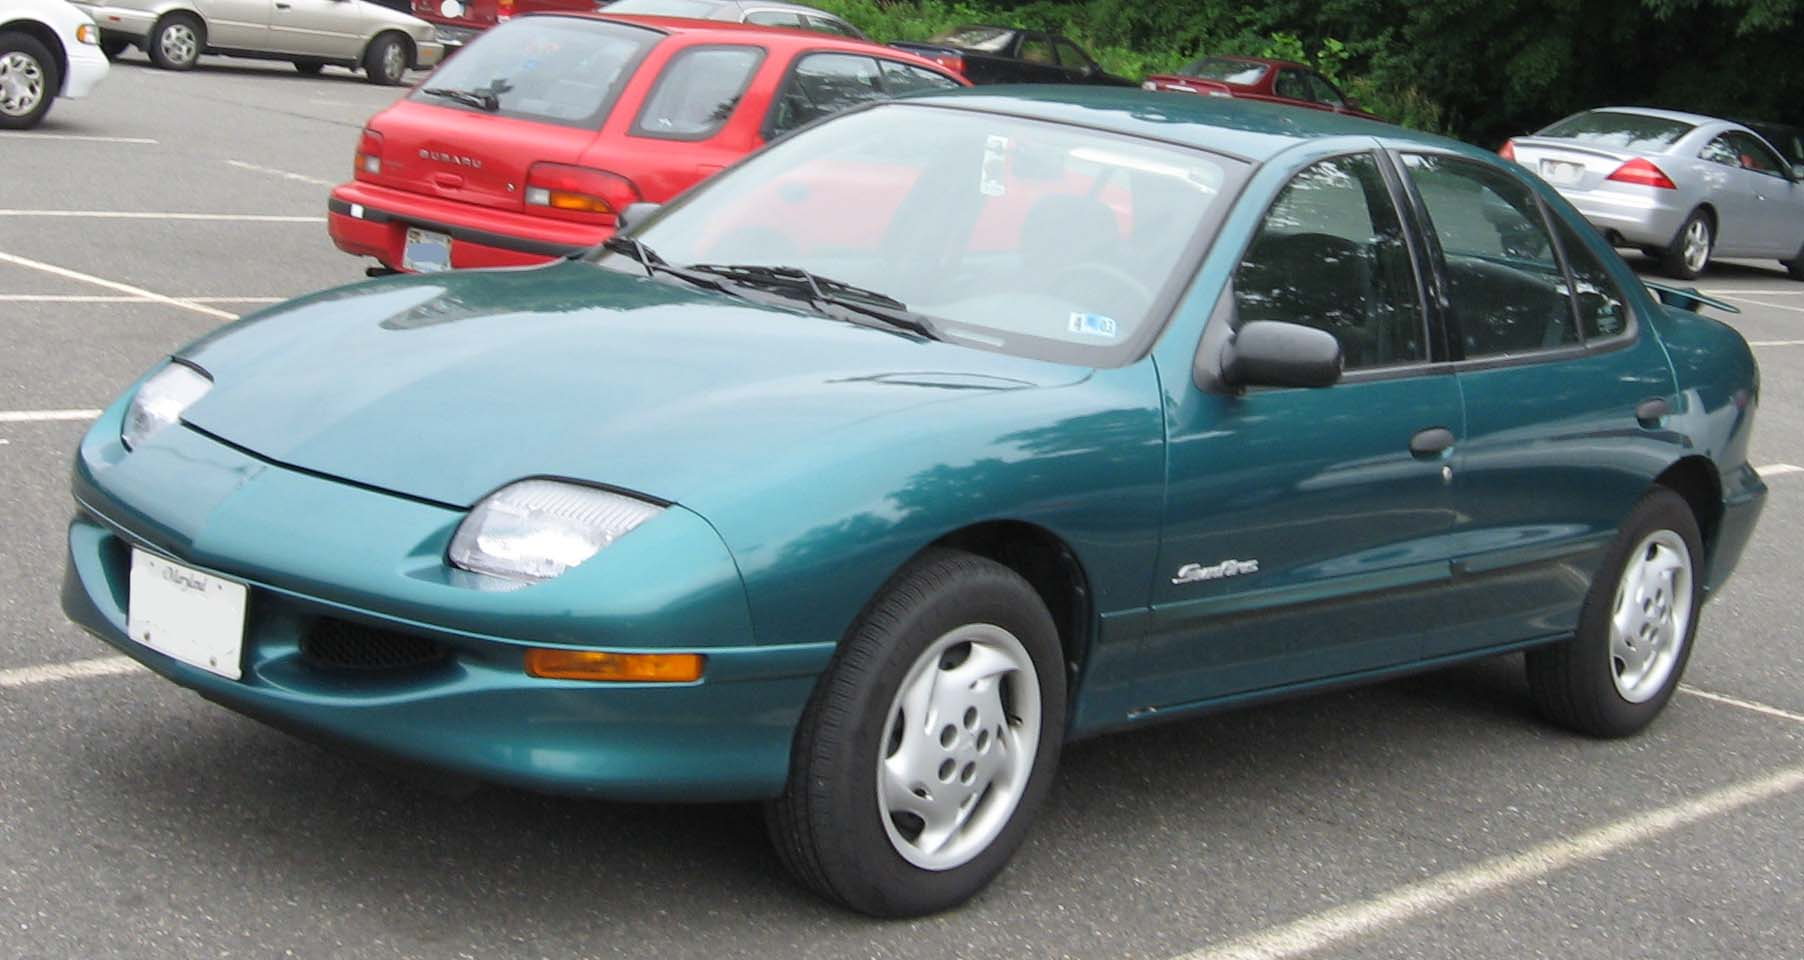 Pontiac sunfire photo - 1